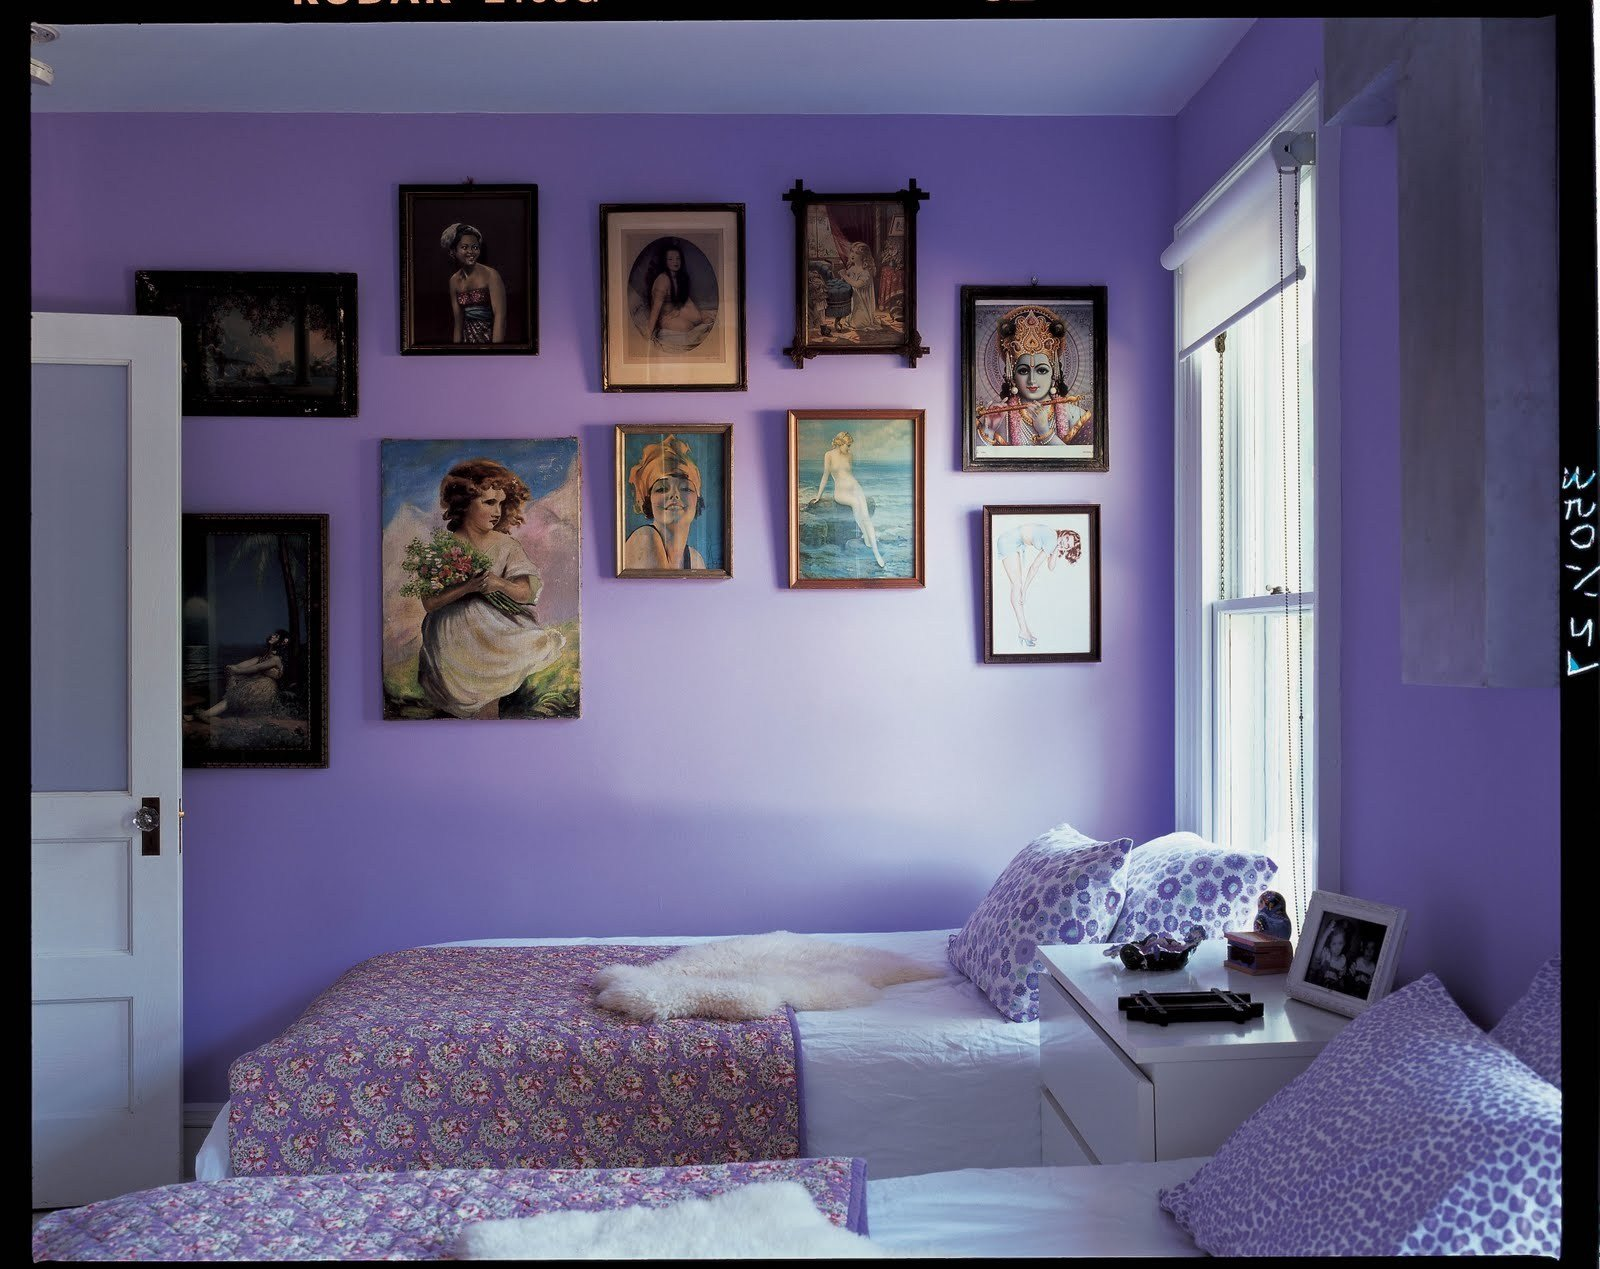 Best Shiny Pink And Purple Bedroom Walls 1024X1024 With Pictures